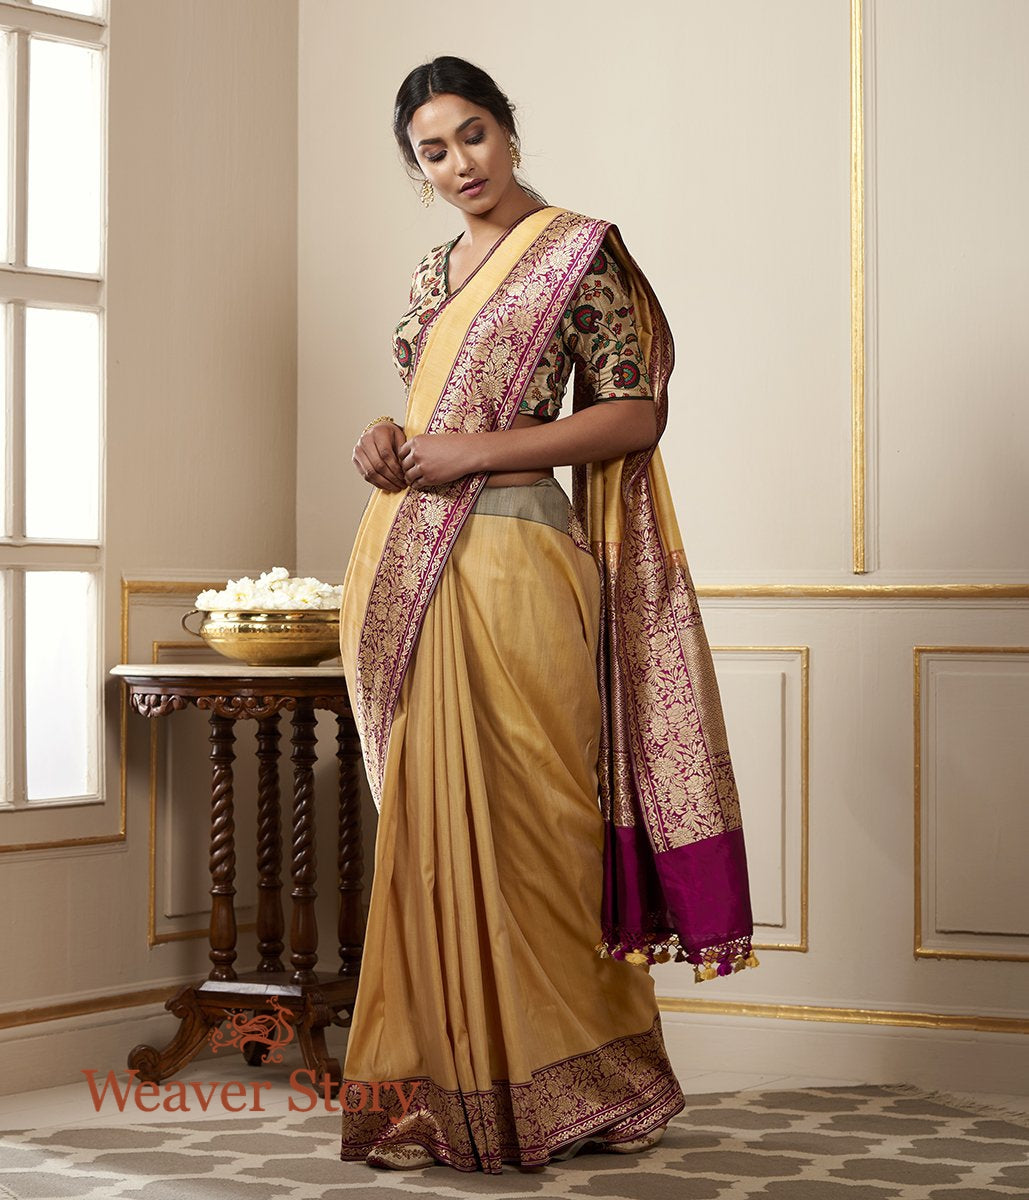 Handwoven Mustard Banarasi Tusser Silk Saree with Deep Wine Border and Pallu